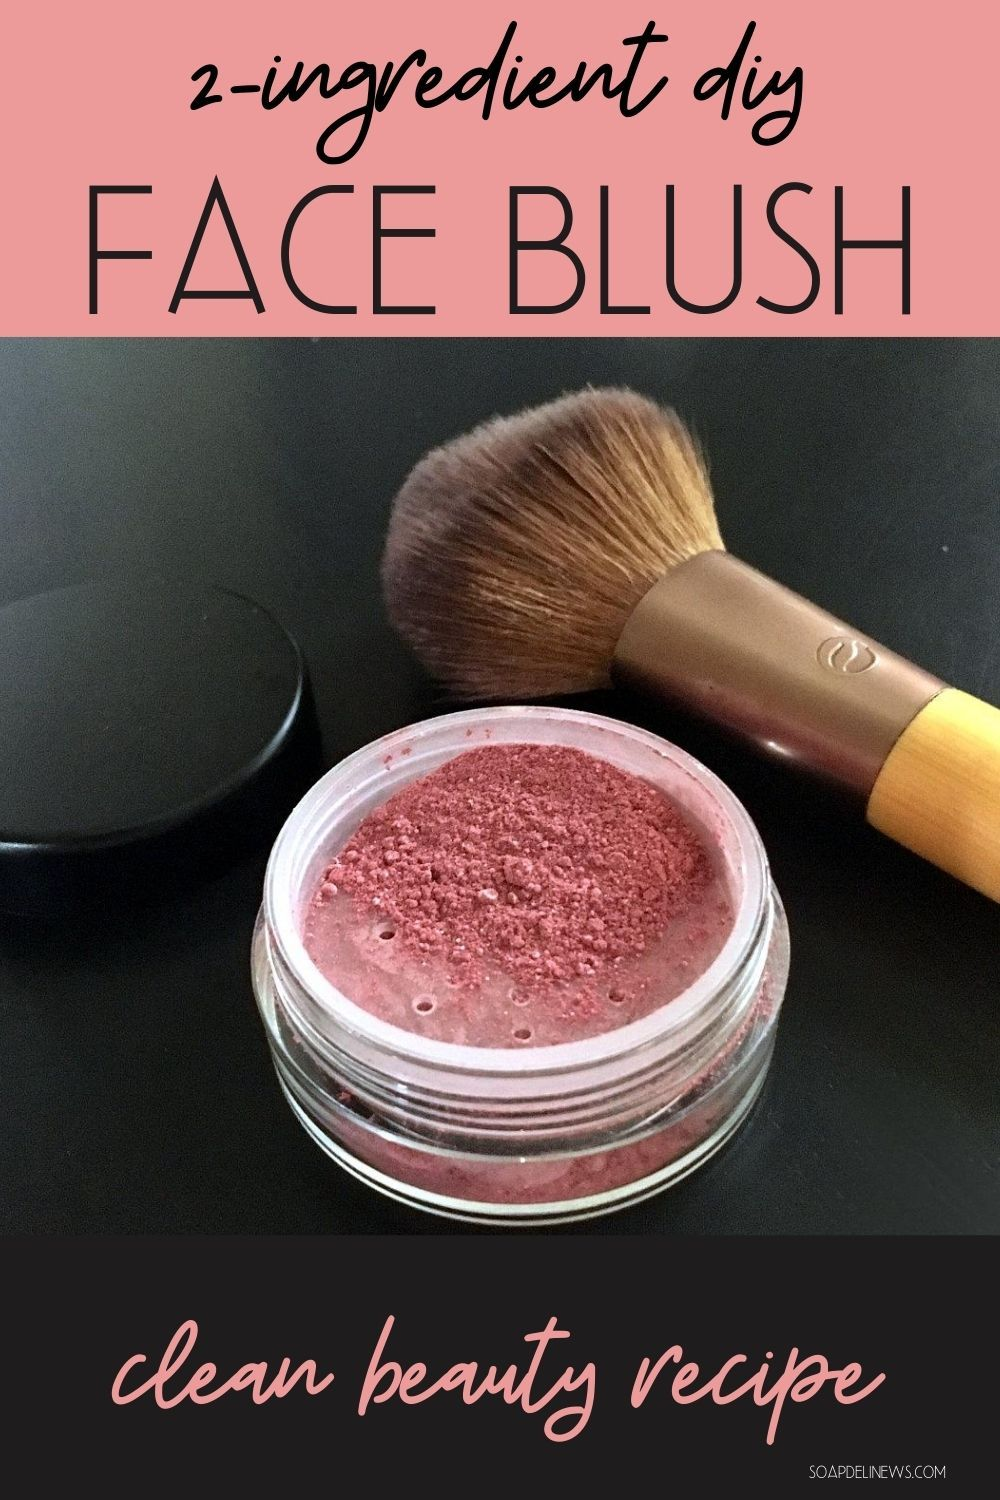 DIY Blush How to Make a Natural Face Blush Recipe with